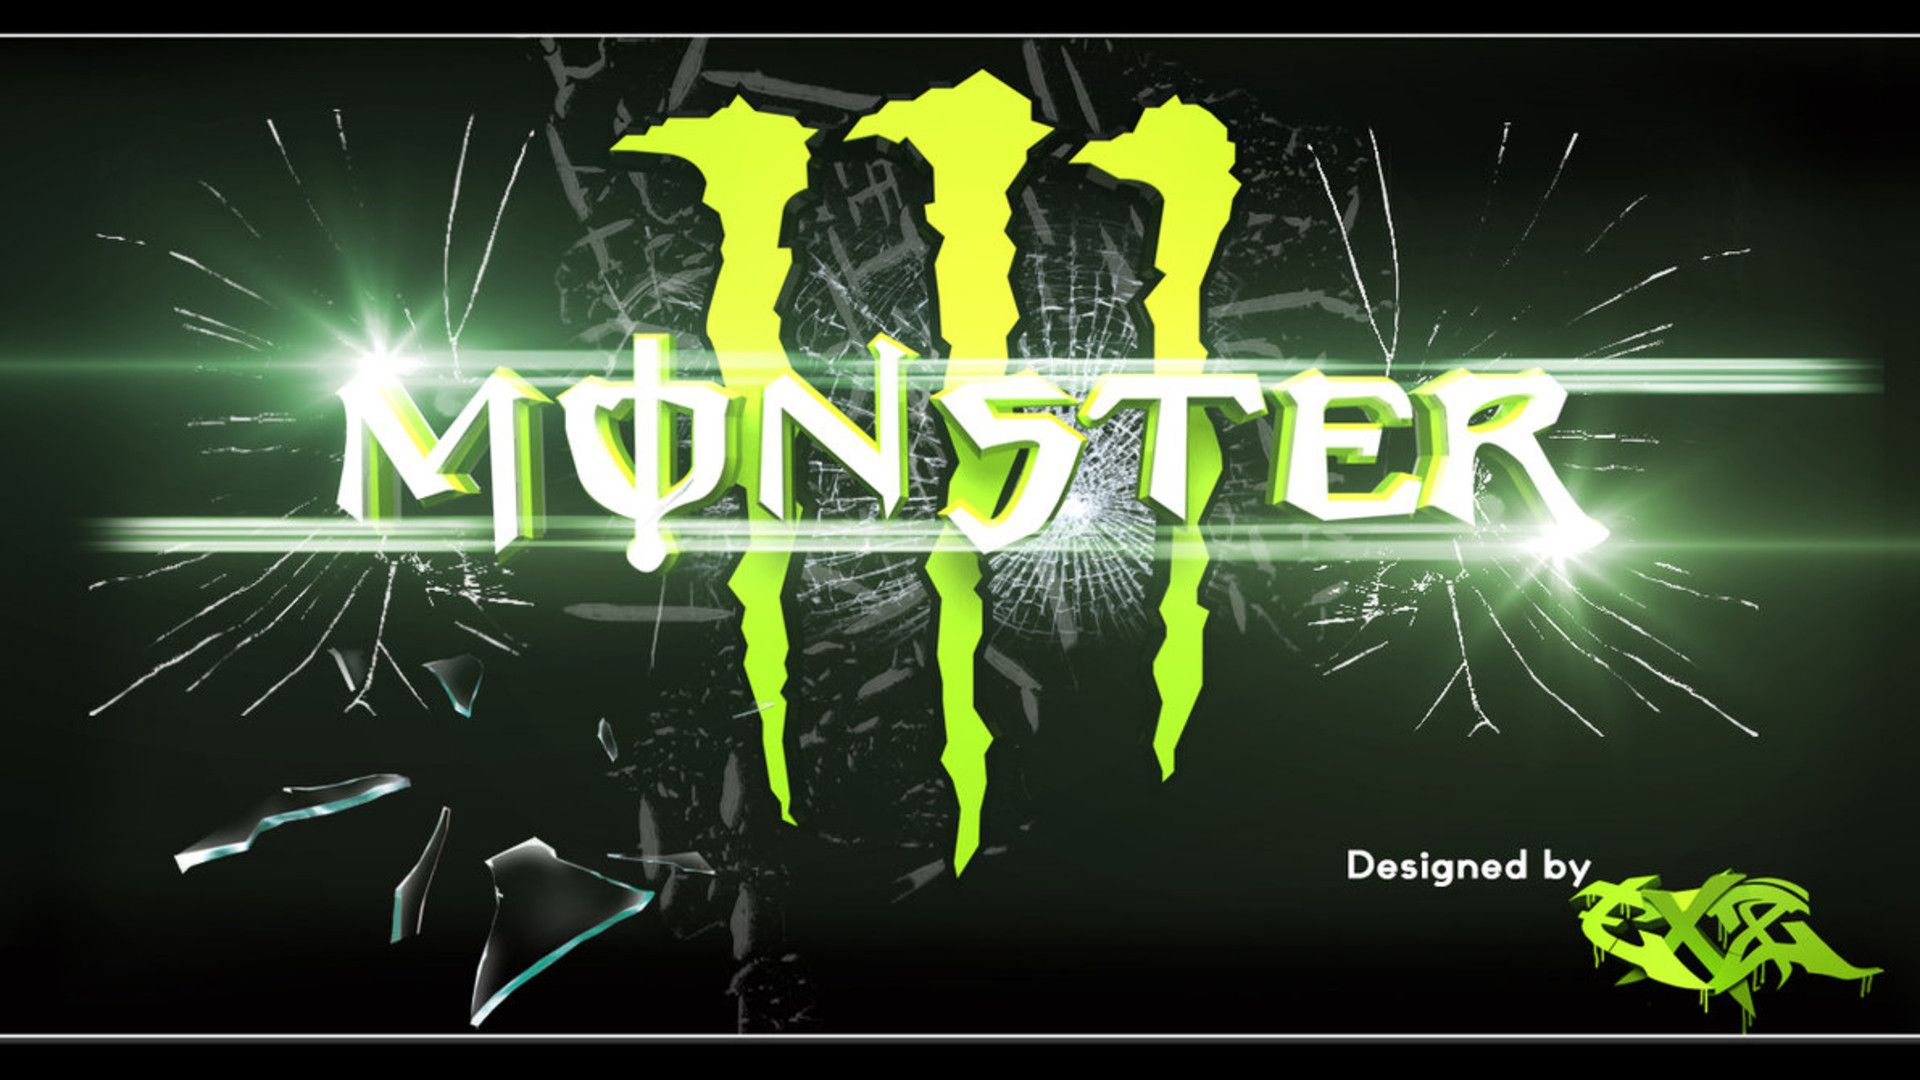 Top  ideas about Monster Wallpapers on Pinterest  Logos 1920x1080